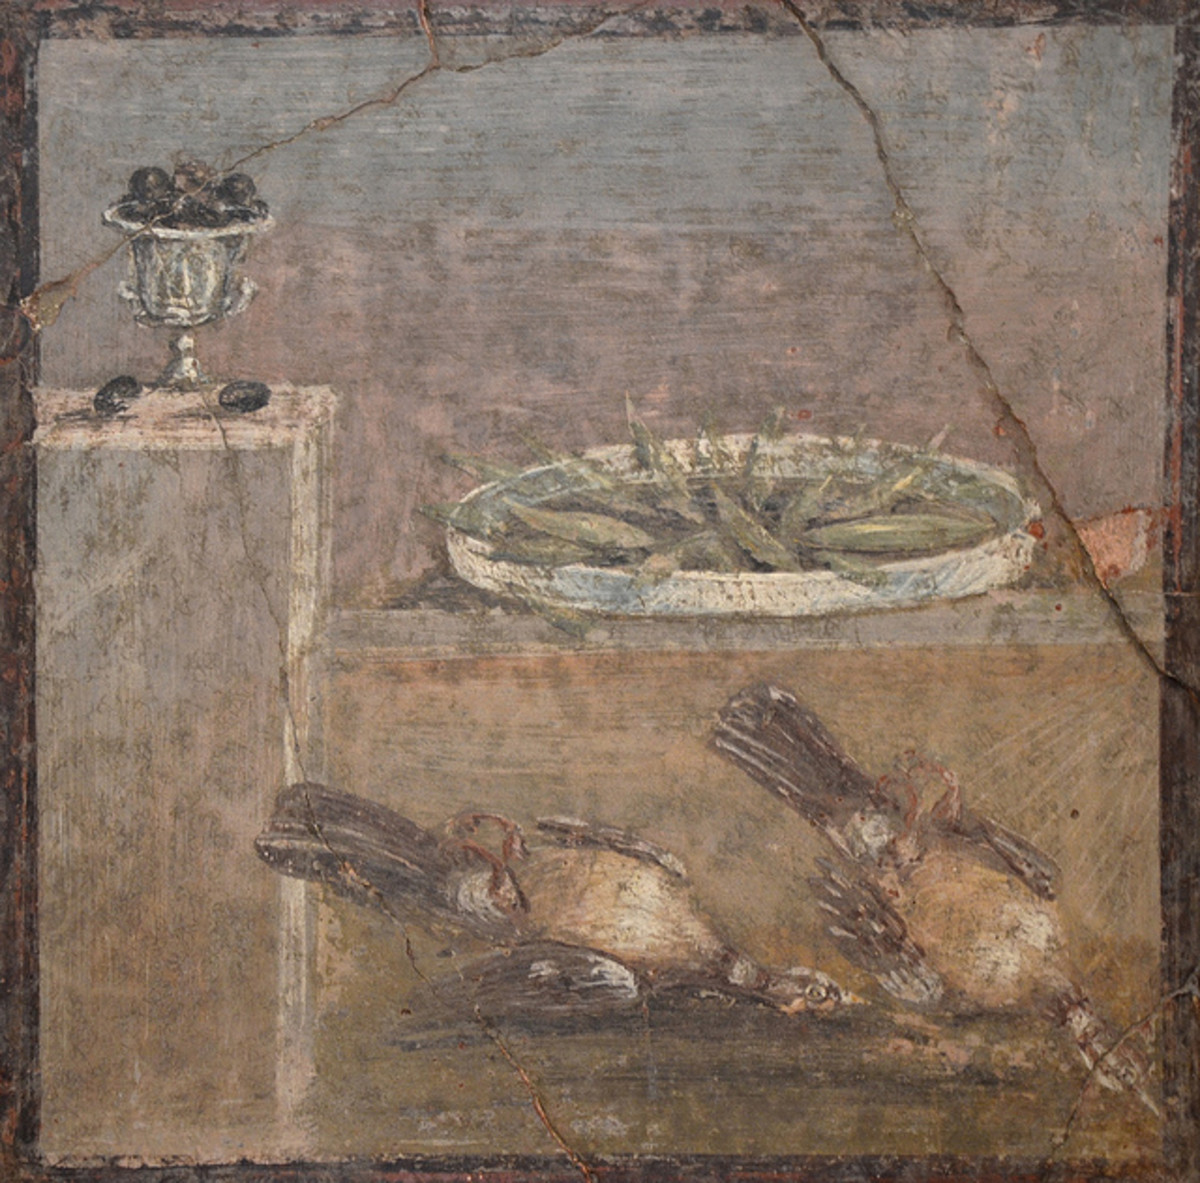 The Many Uses of Olive Oil in Ancient Rome